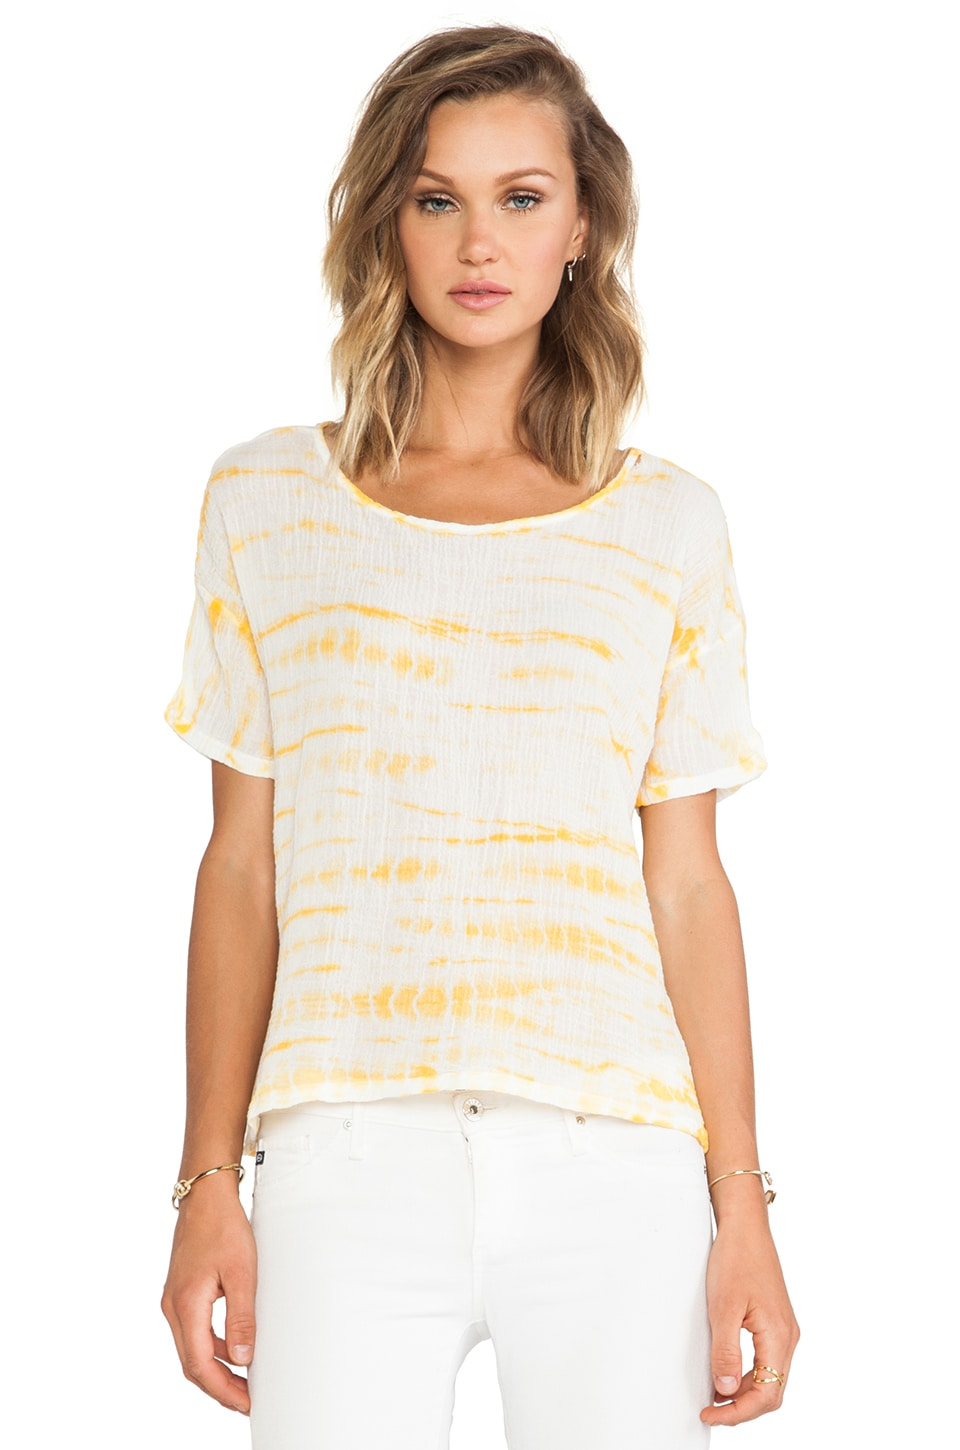 Kain Evie Tee in Marigold Alligator